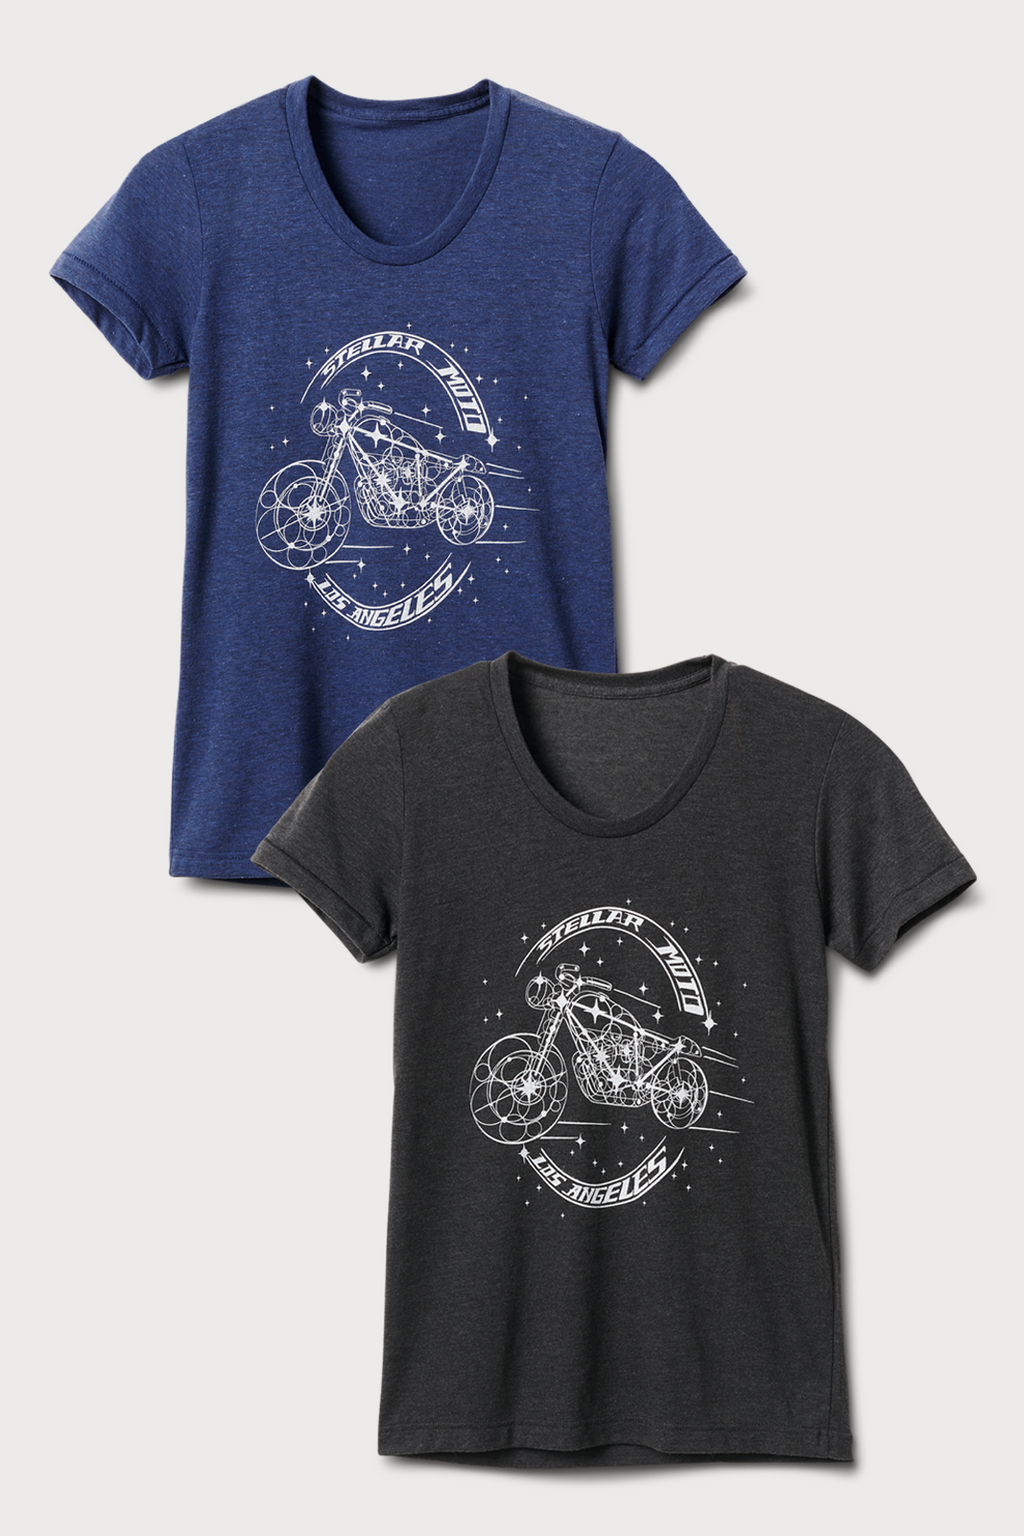 Stellar, Moto, functional art, moto gear, MOTO CONSTELLATION, t-shirt, neckline, cotton, vintage, short sleeve, protective wear, functional fashion, motorcycle, shirt, tee, retro, fashion